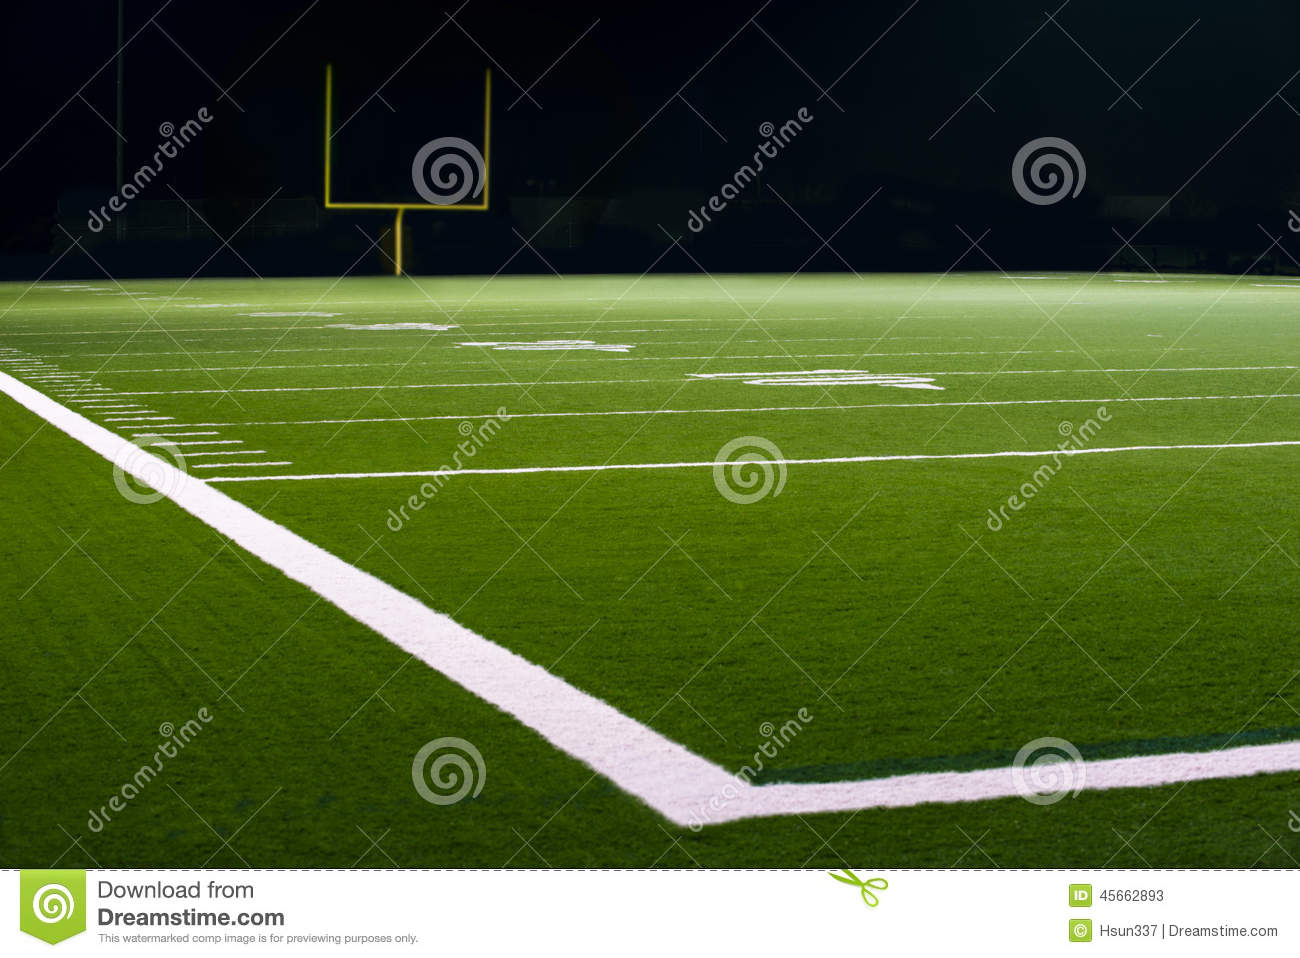 Yard Numbers And Line On American Football Field Stock Photo.